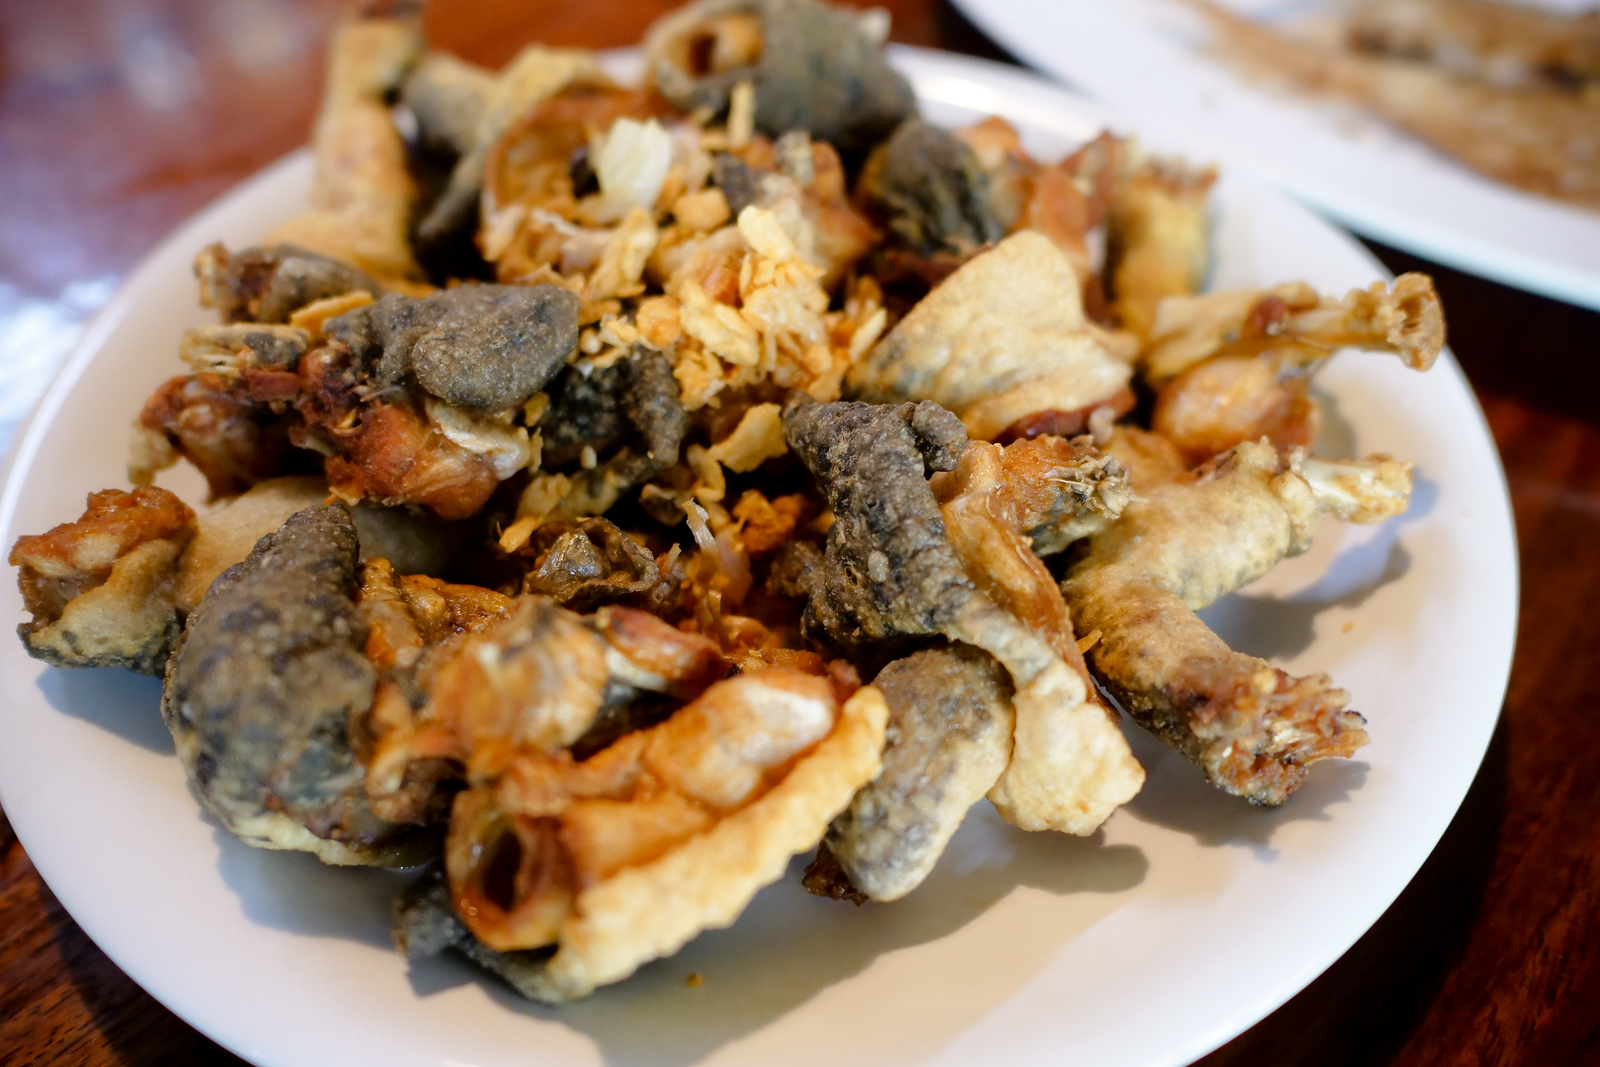 Fried frog at Ba Chao Ahaan Pa